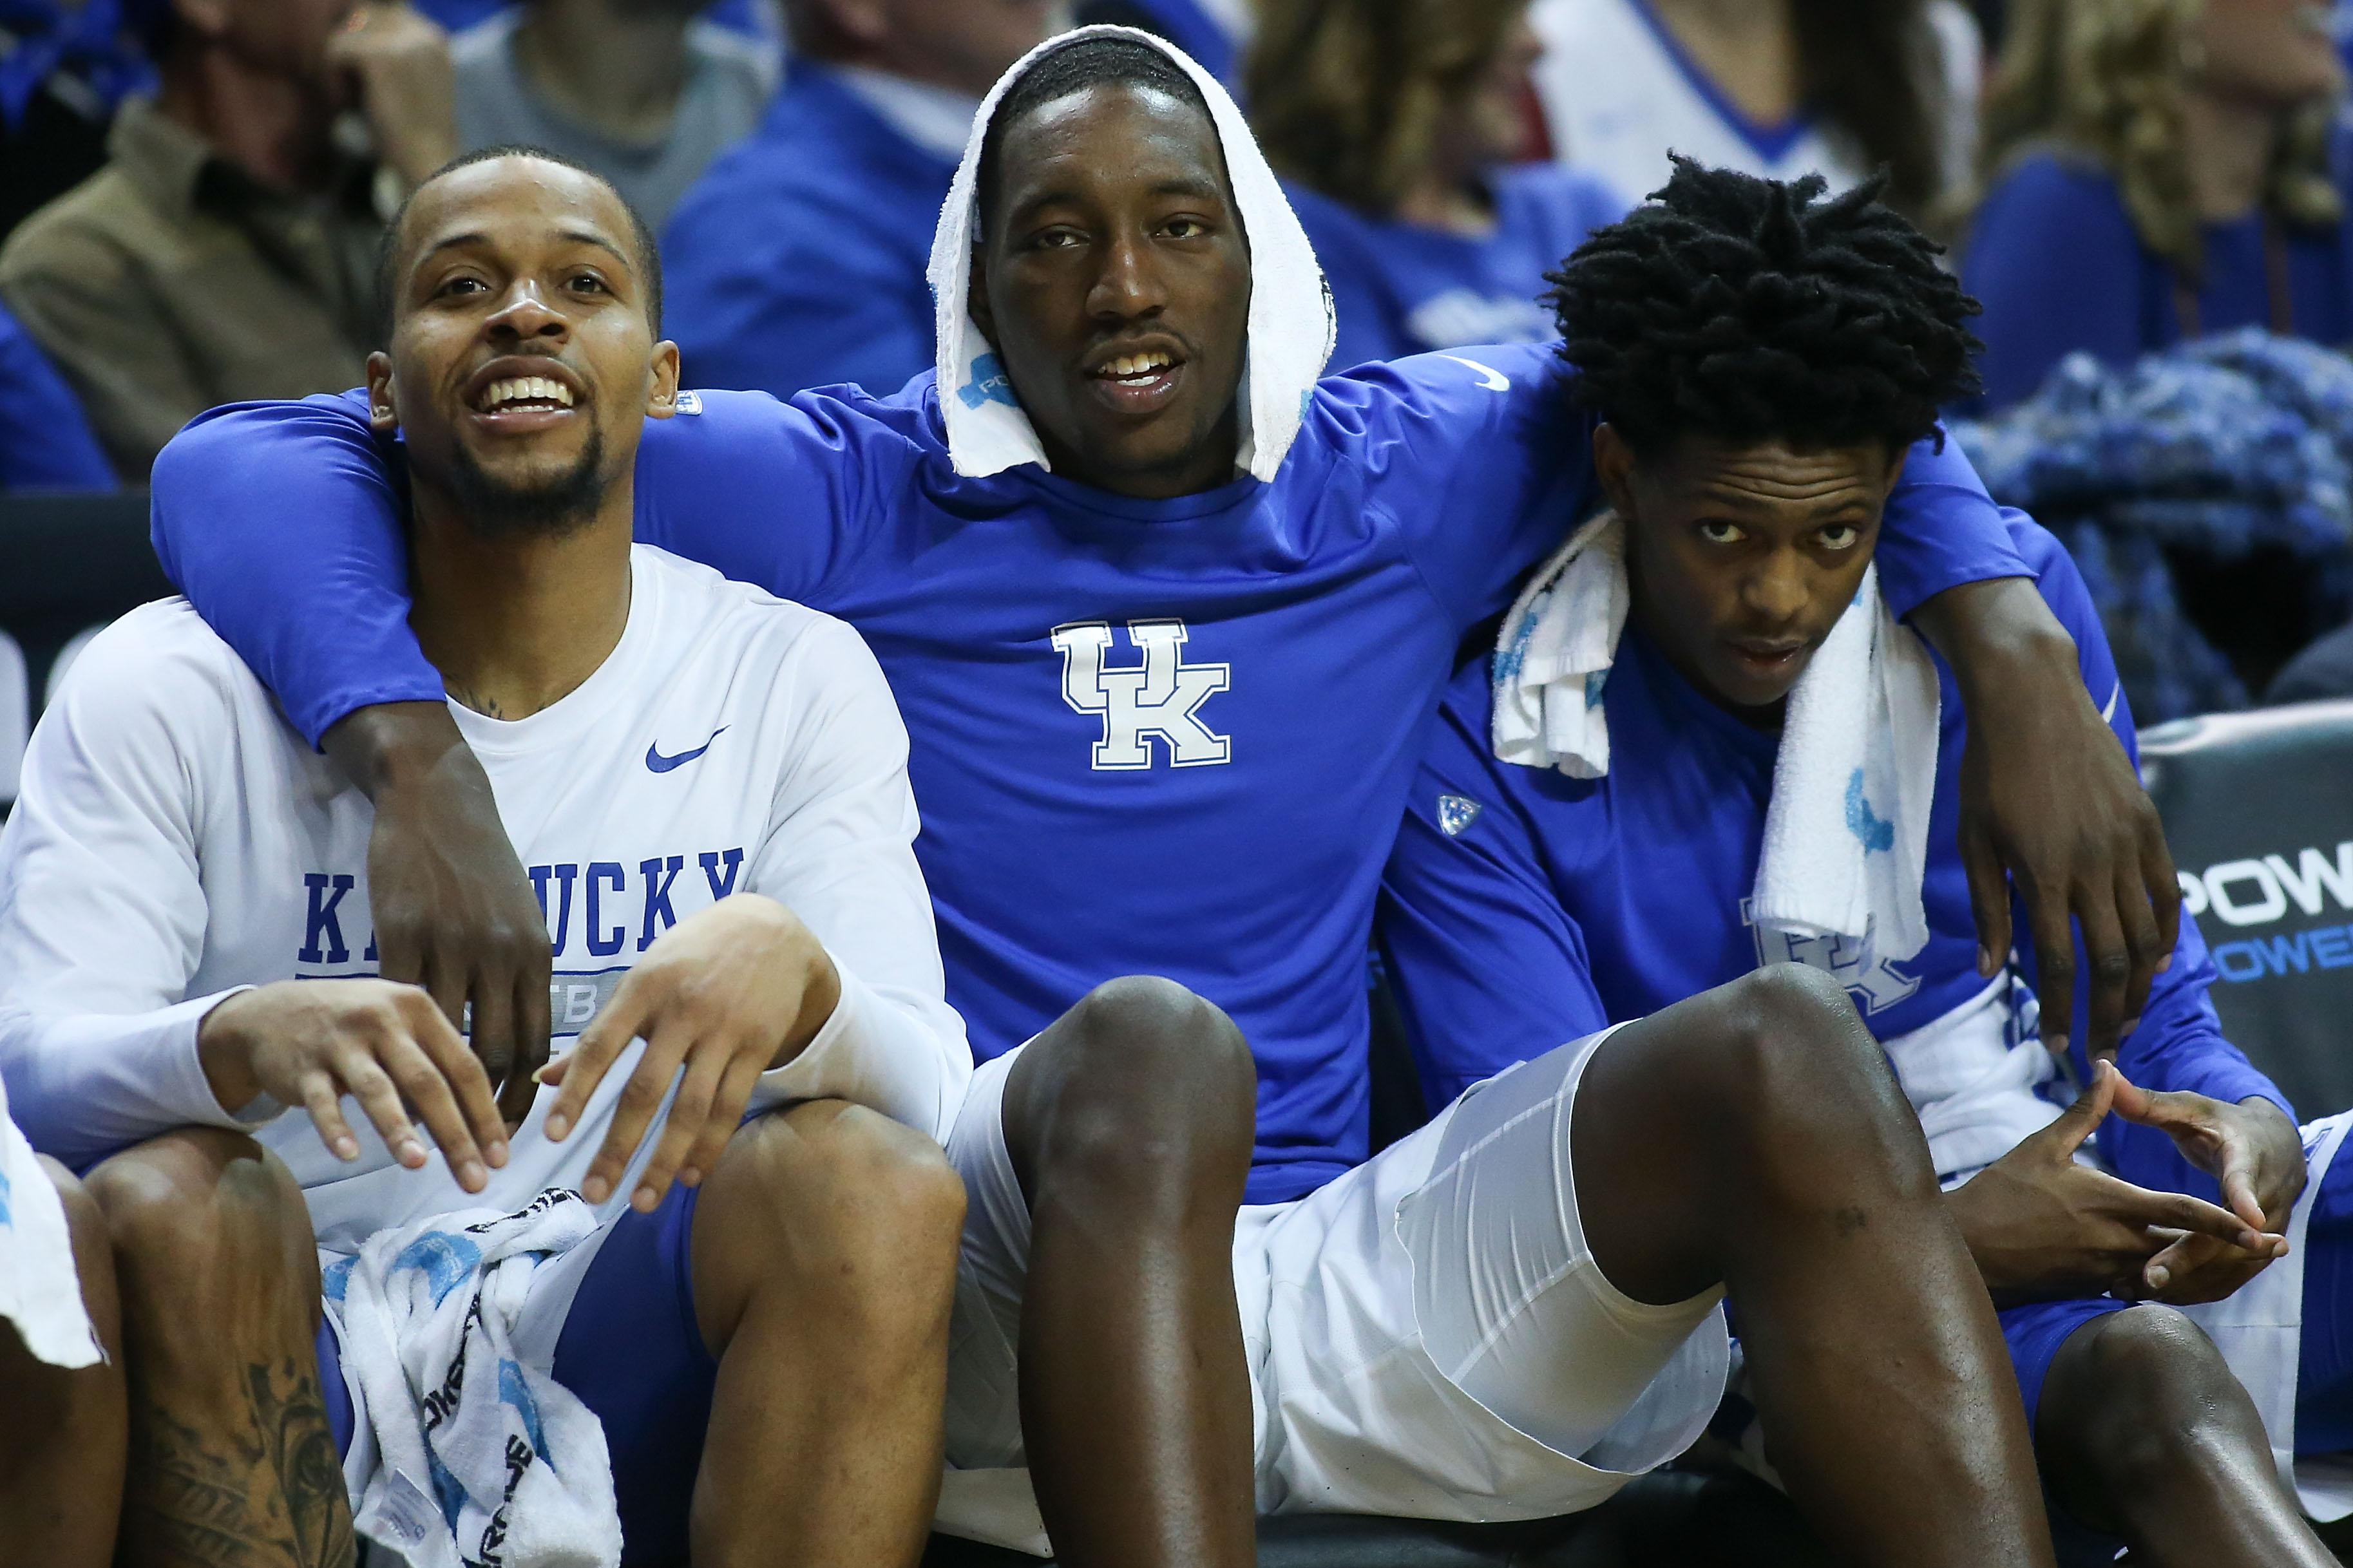 NEW YORK, NY - DECEMBER 11: (L-R) Isaiah Briscoe #13, Edrice Adebayo #3 and De'Aaron Fox #0 of the Kentucky Wildcats celebrate on the bench against the Hofstra Pride in the second half of the Brooklyn Hoops Winter Festival at Barclays Center on December 11, 2016 in the Brooklyn borough of New York City. (Photo by Michael Reaves/Getty Images)